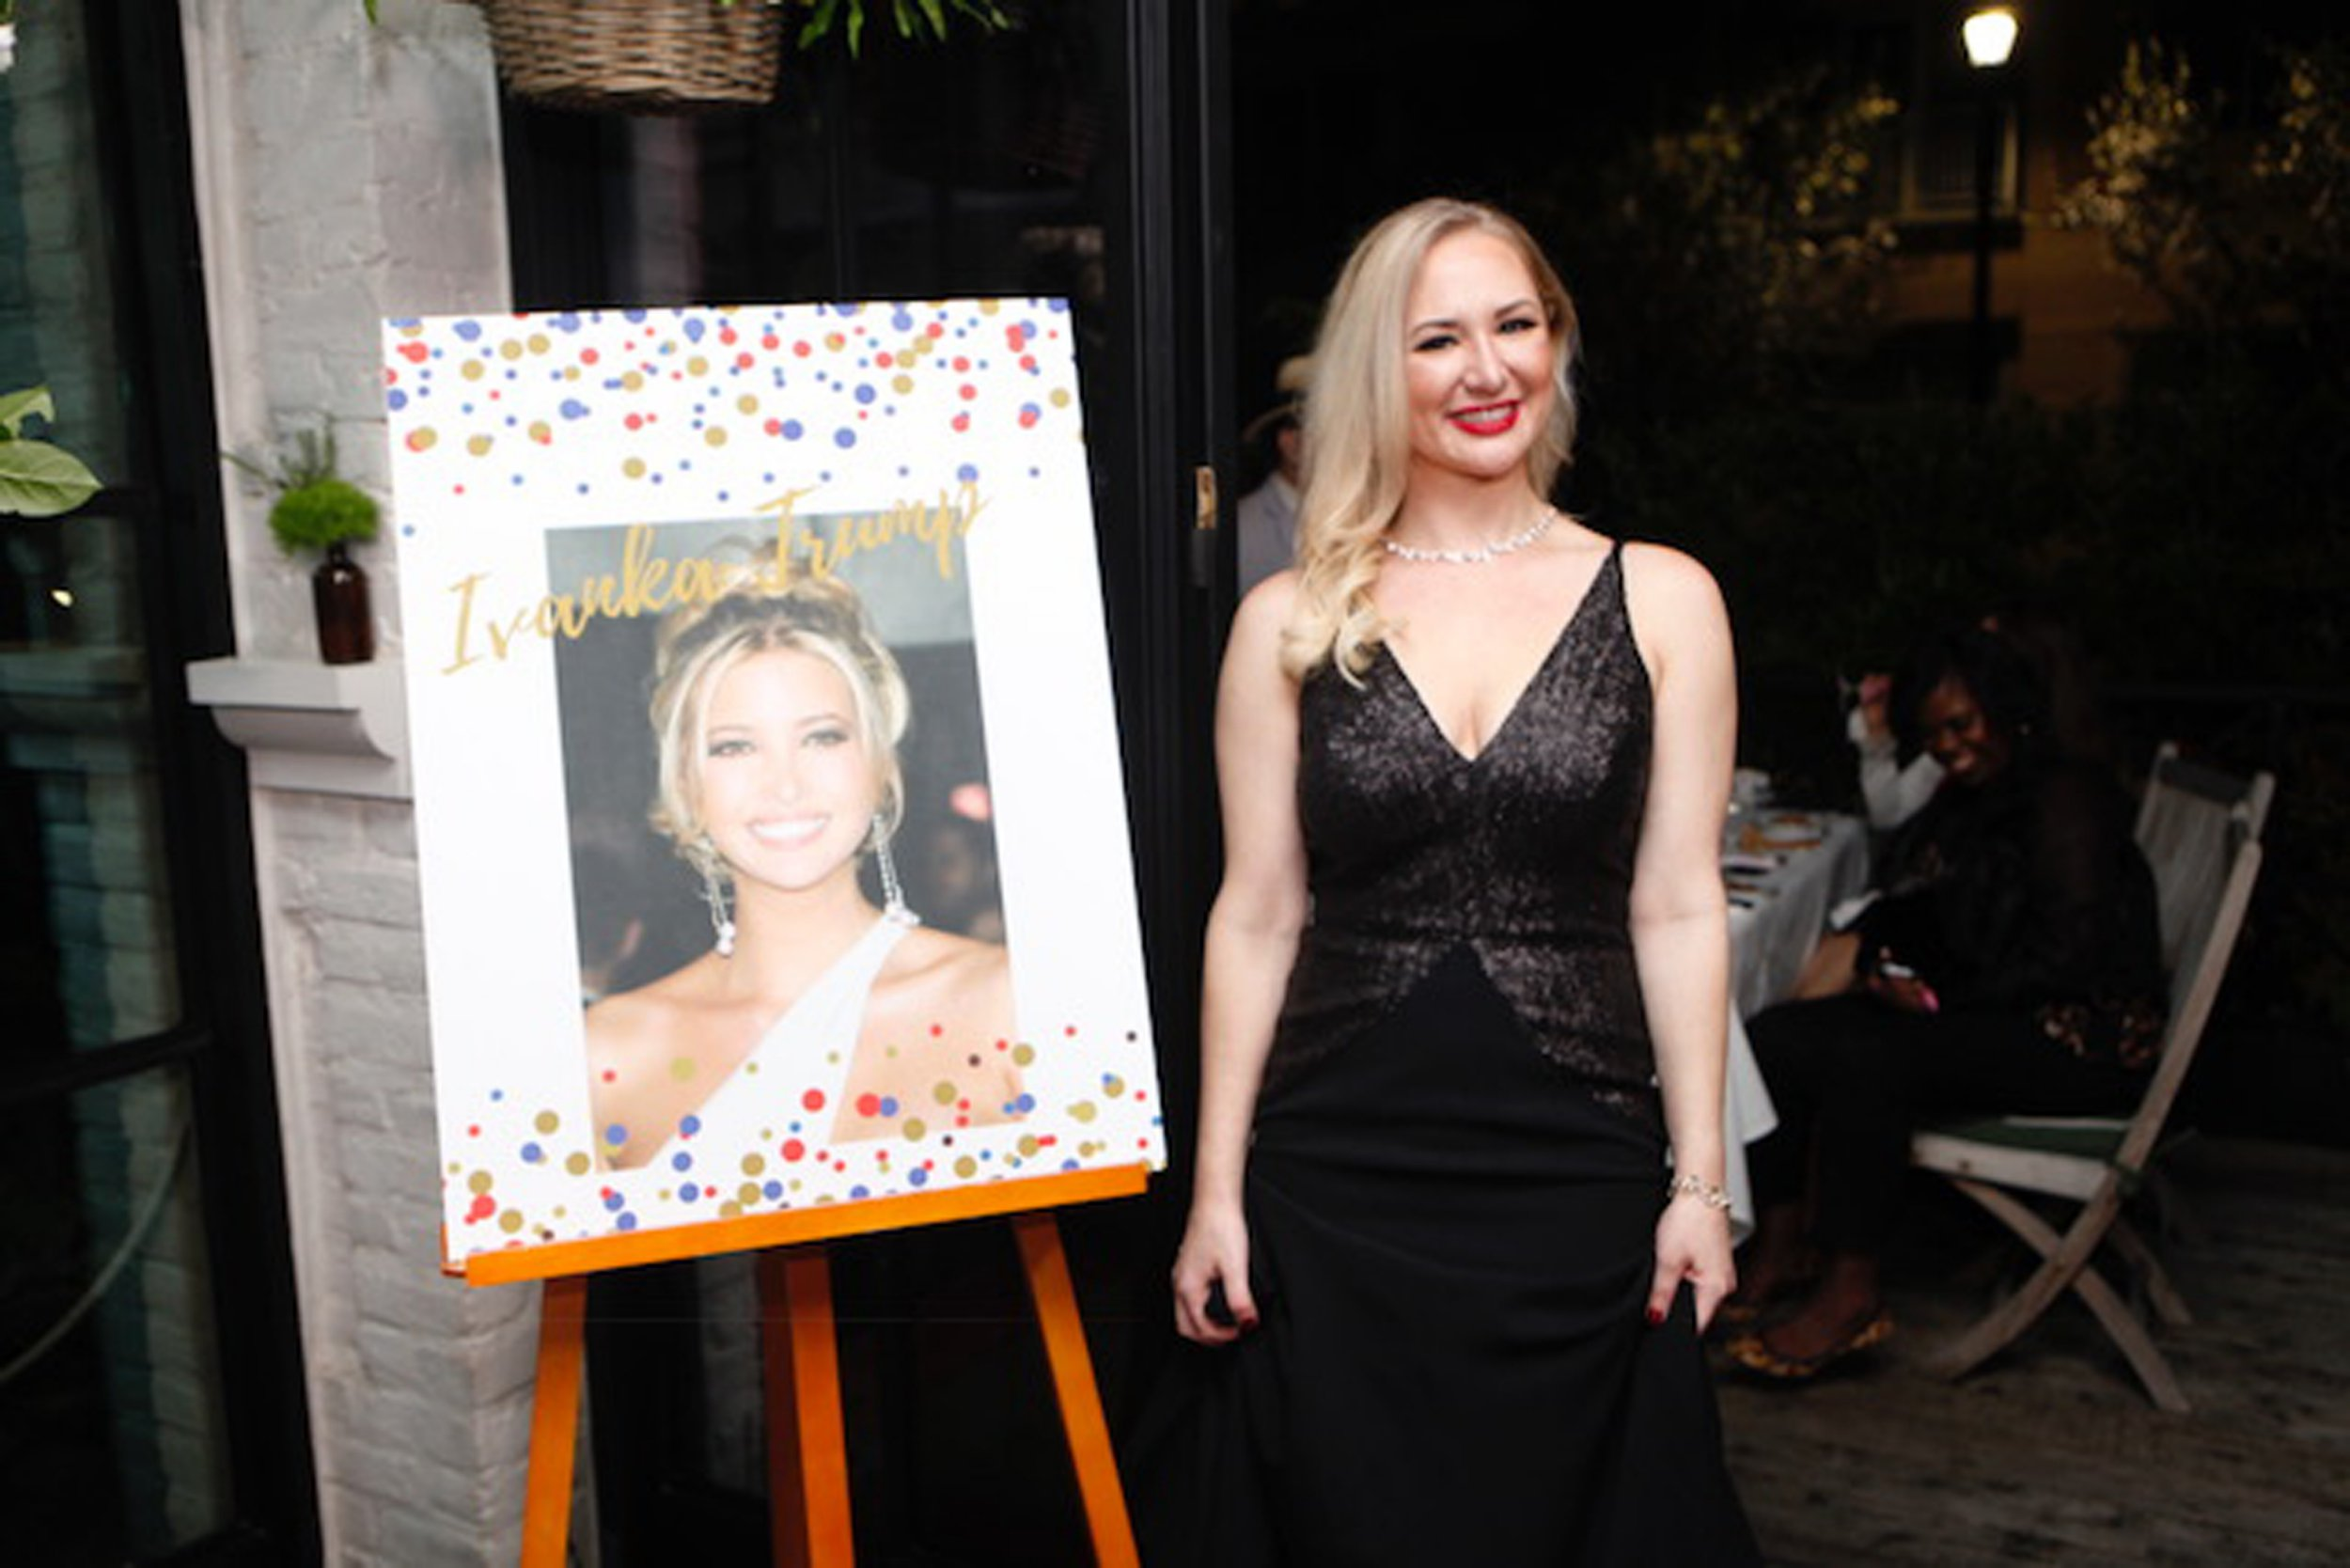 PICS BY SARAH SCHMIDT / CATERS NEWS - (PICTURED: Sarah being unveiled at the event last Thursday) - A technology analyst has spent over USD26,000 (20kGBP) on surgeries to look like Ivanka Trump after an embarrassing Shrek bikini snap. Sarah Schmidt, 34, from Houston in Texas, USA, longed for plastic surgery from the age of ten, initially idolising the models in Playboy magazine before her tastes matured. She chose to go under the knife two-months-ago after seeing an unflattering bikini picture where she hated her curvy figure and felt like Shrek. Admiring the beauty the Presidents daughter, she chose to go under the knife to resemble Ivanka facially and to refine her body. - SEE CATERS COPY